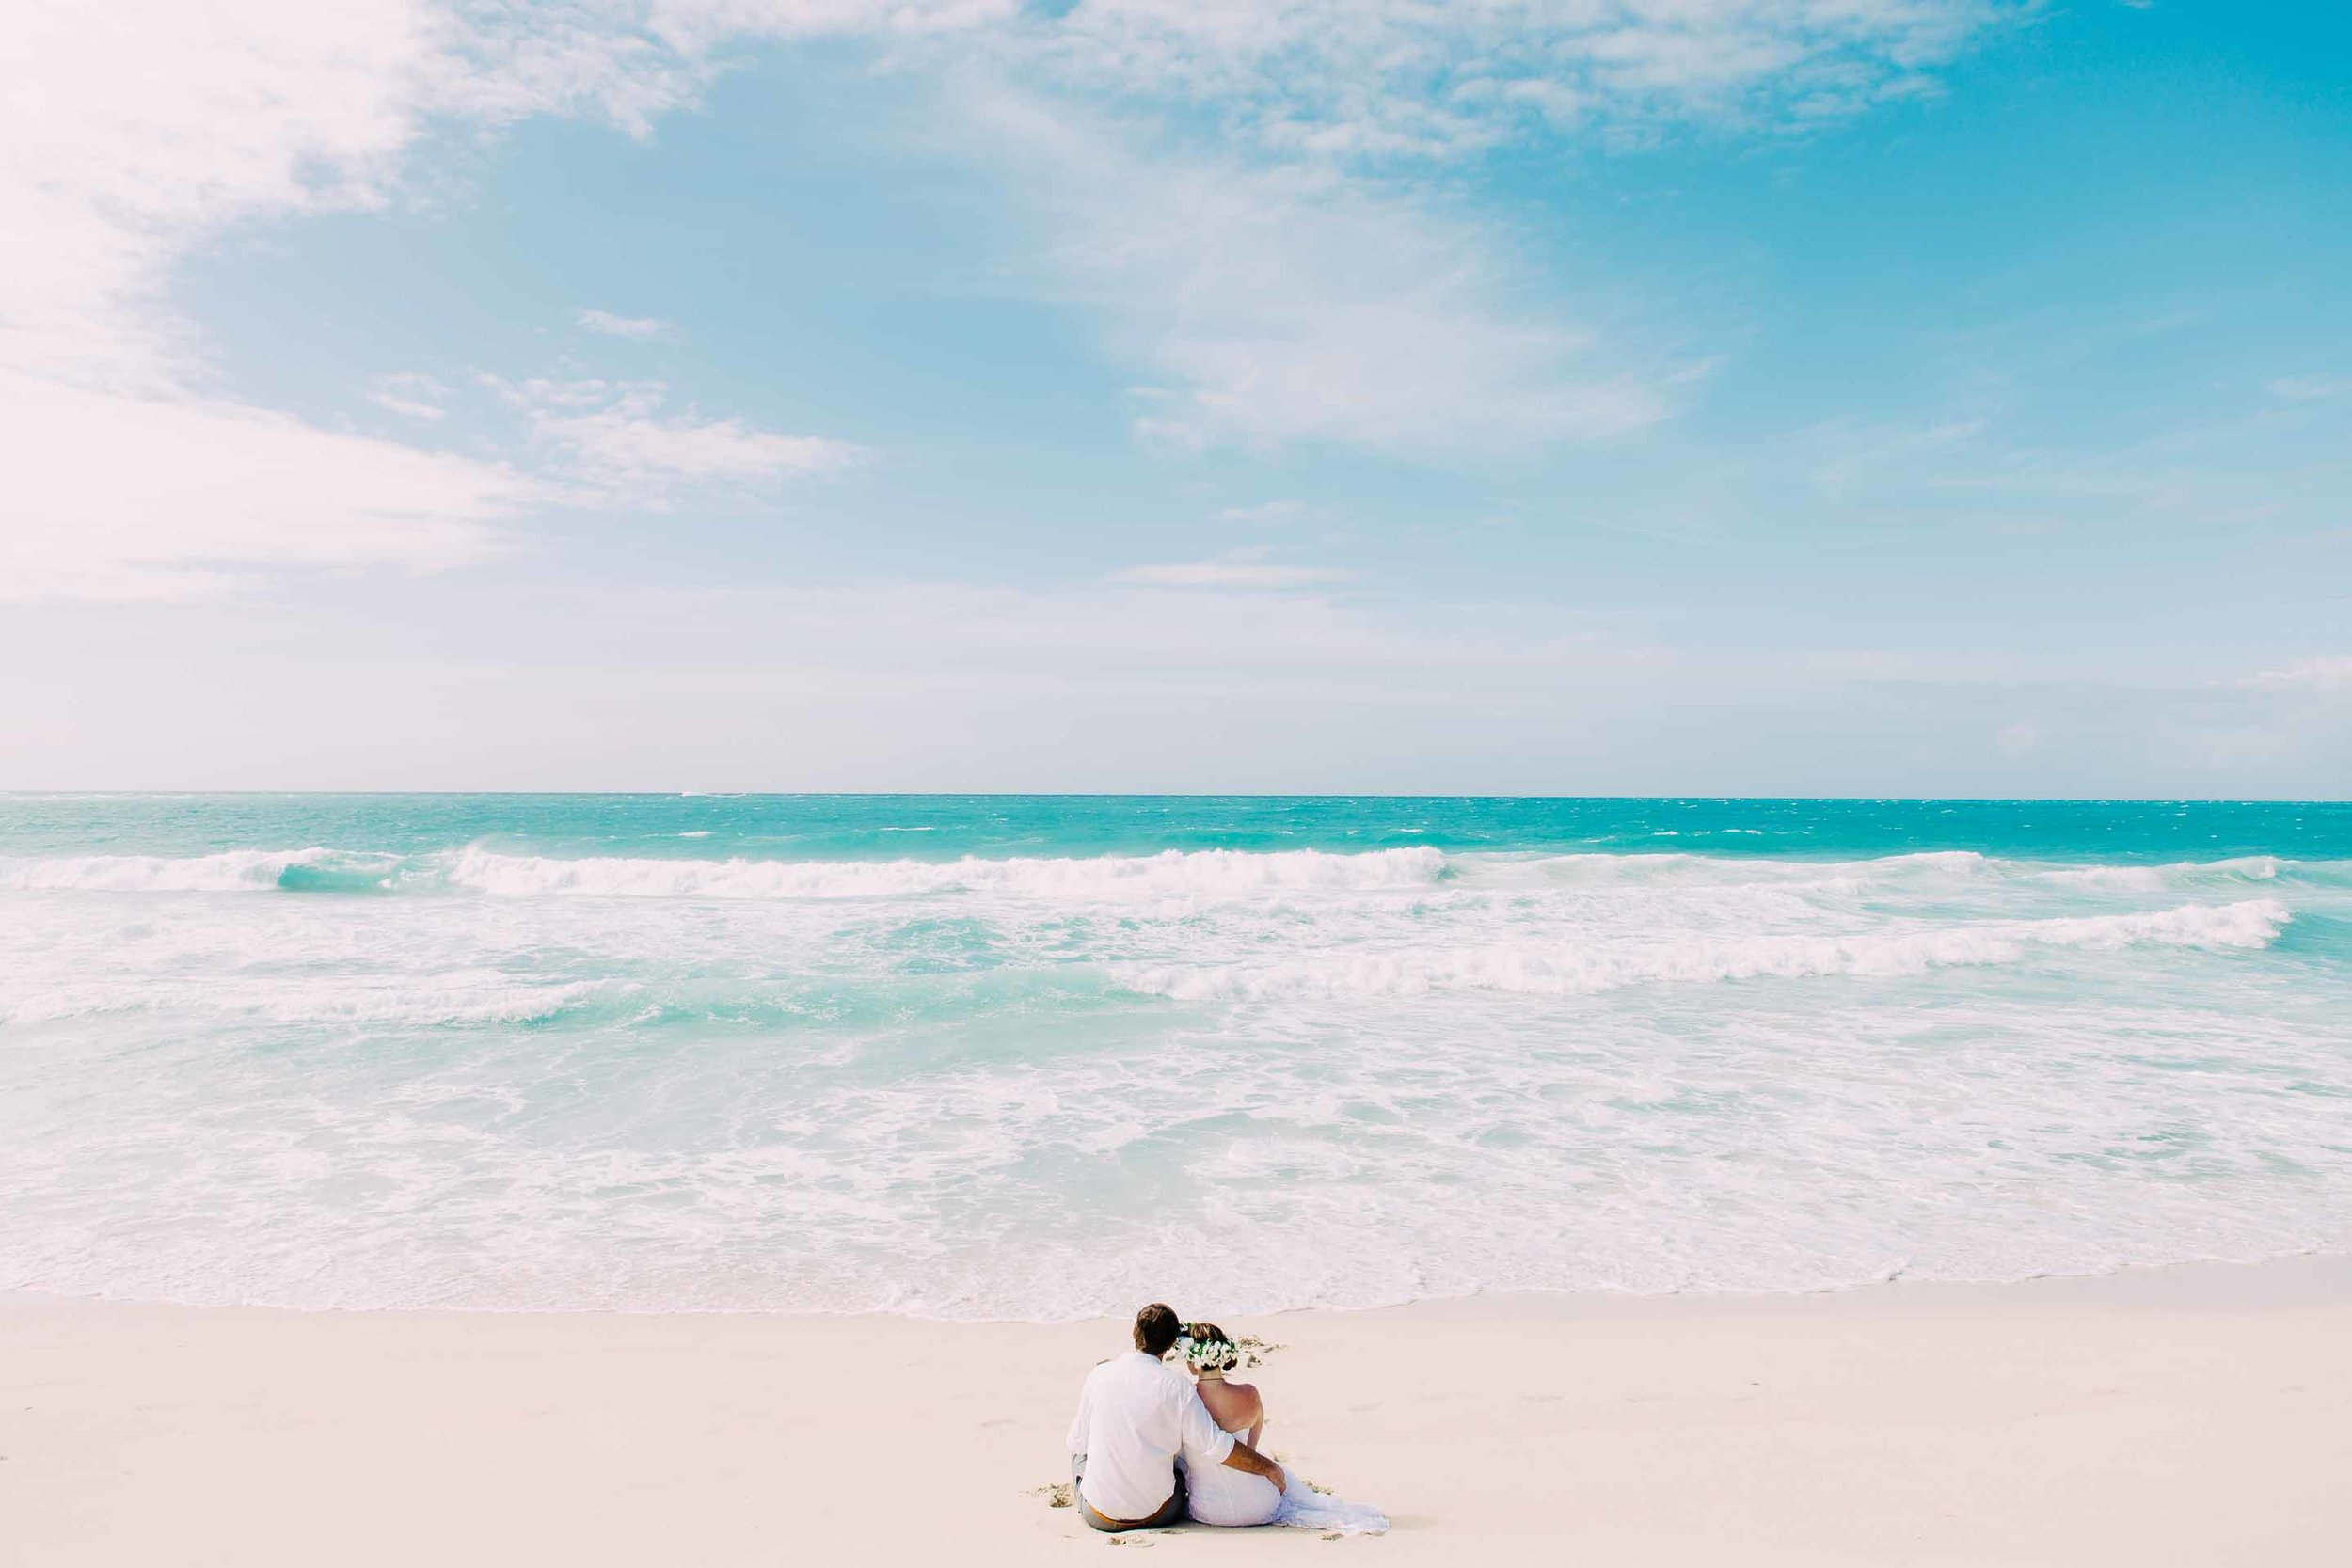 the couple sitting alone on the deserted beach